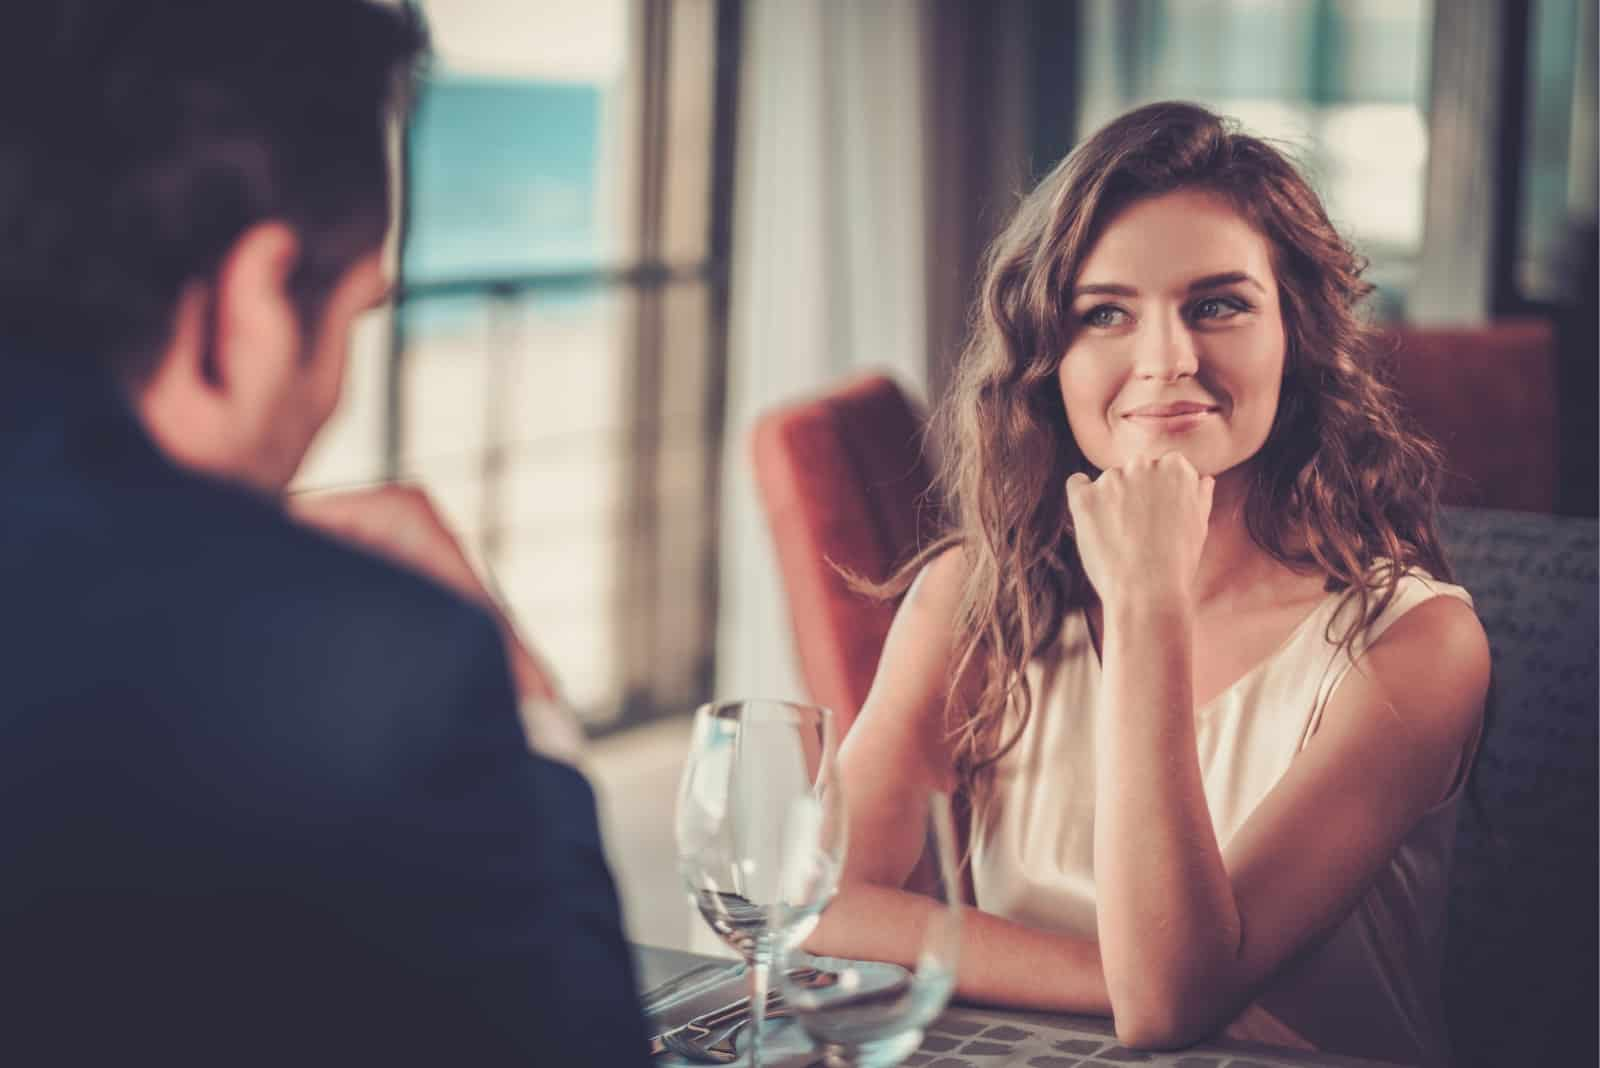 woman looking at man while sitting in restaurant